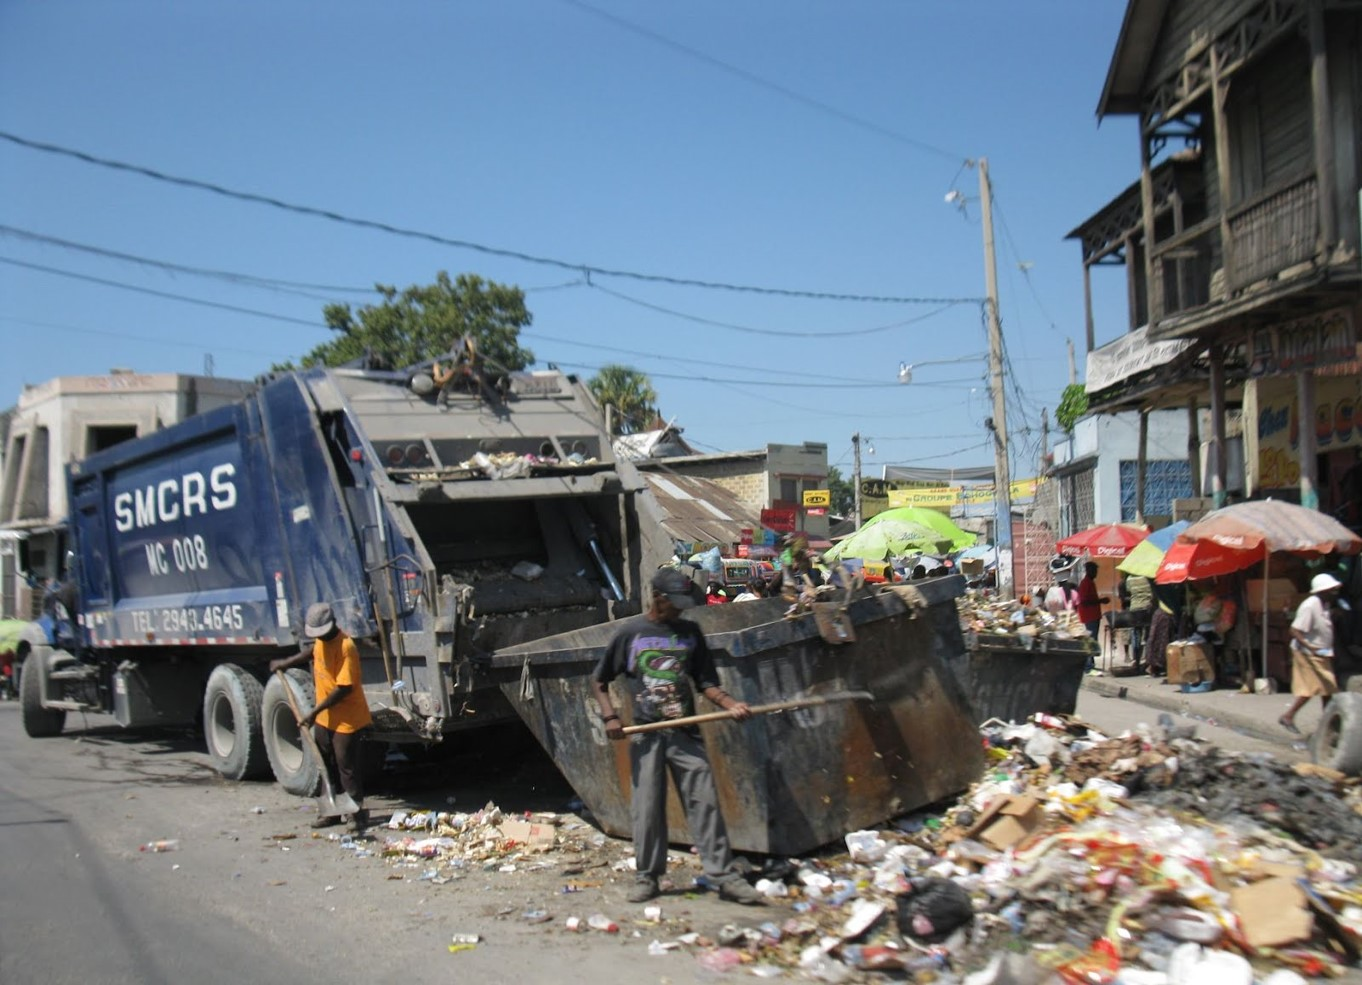 Although  there is effort being put forth in waste collection, there isn't a viable solution in place. Site dumping to then incinerate in the open environment is the current solution. With a proper solution in place jobs can be created to better manage the waste all the while creating much needed resources.